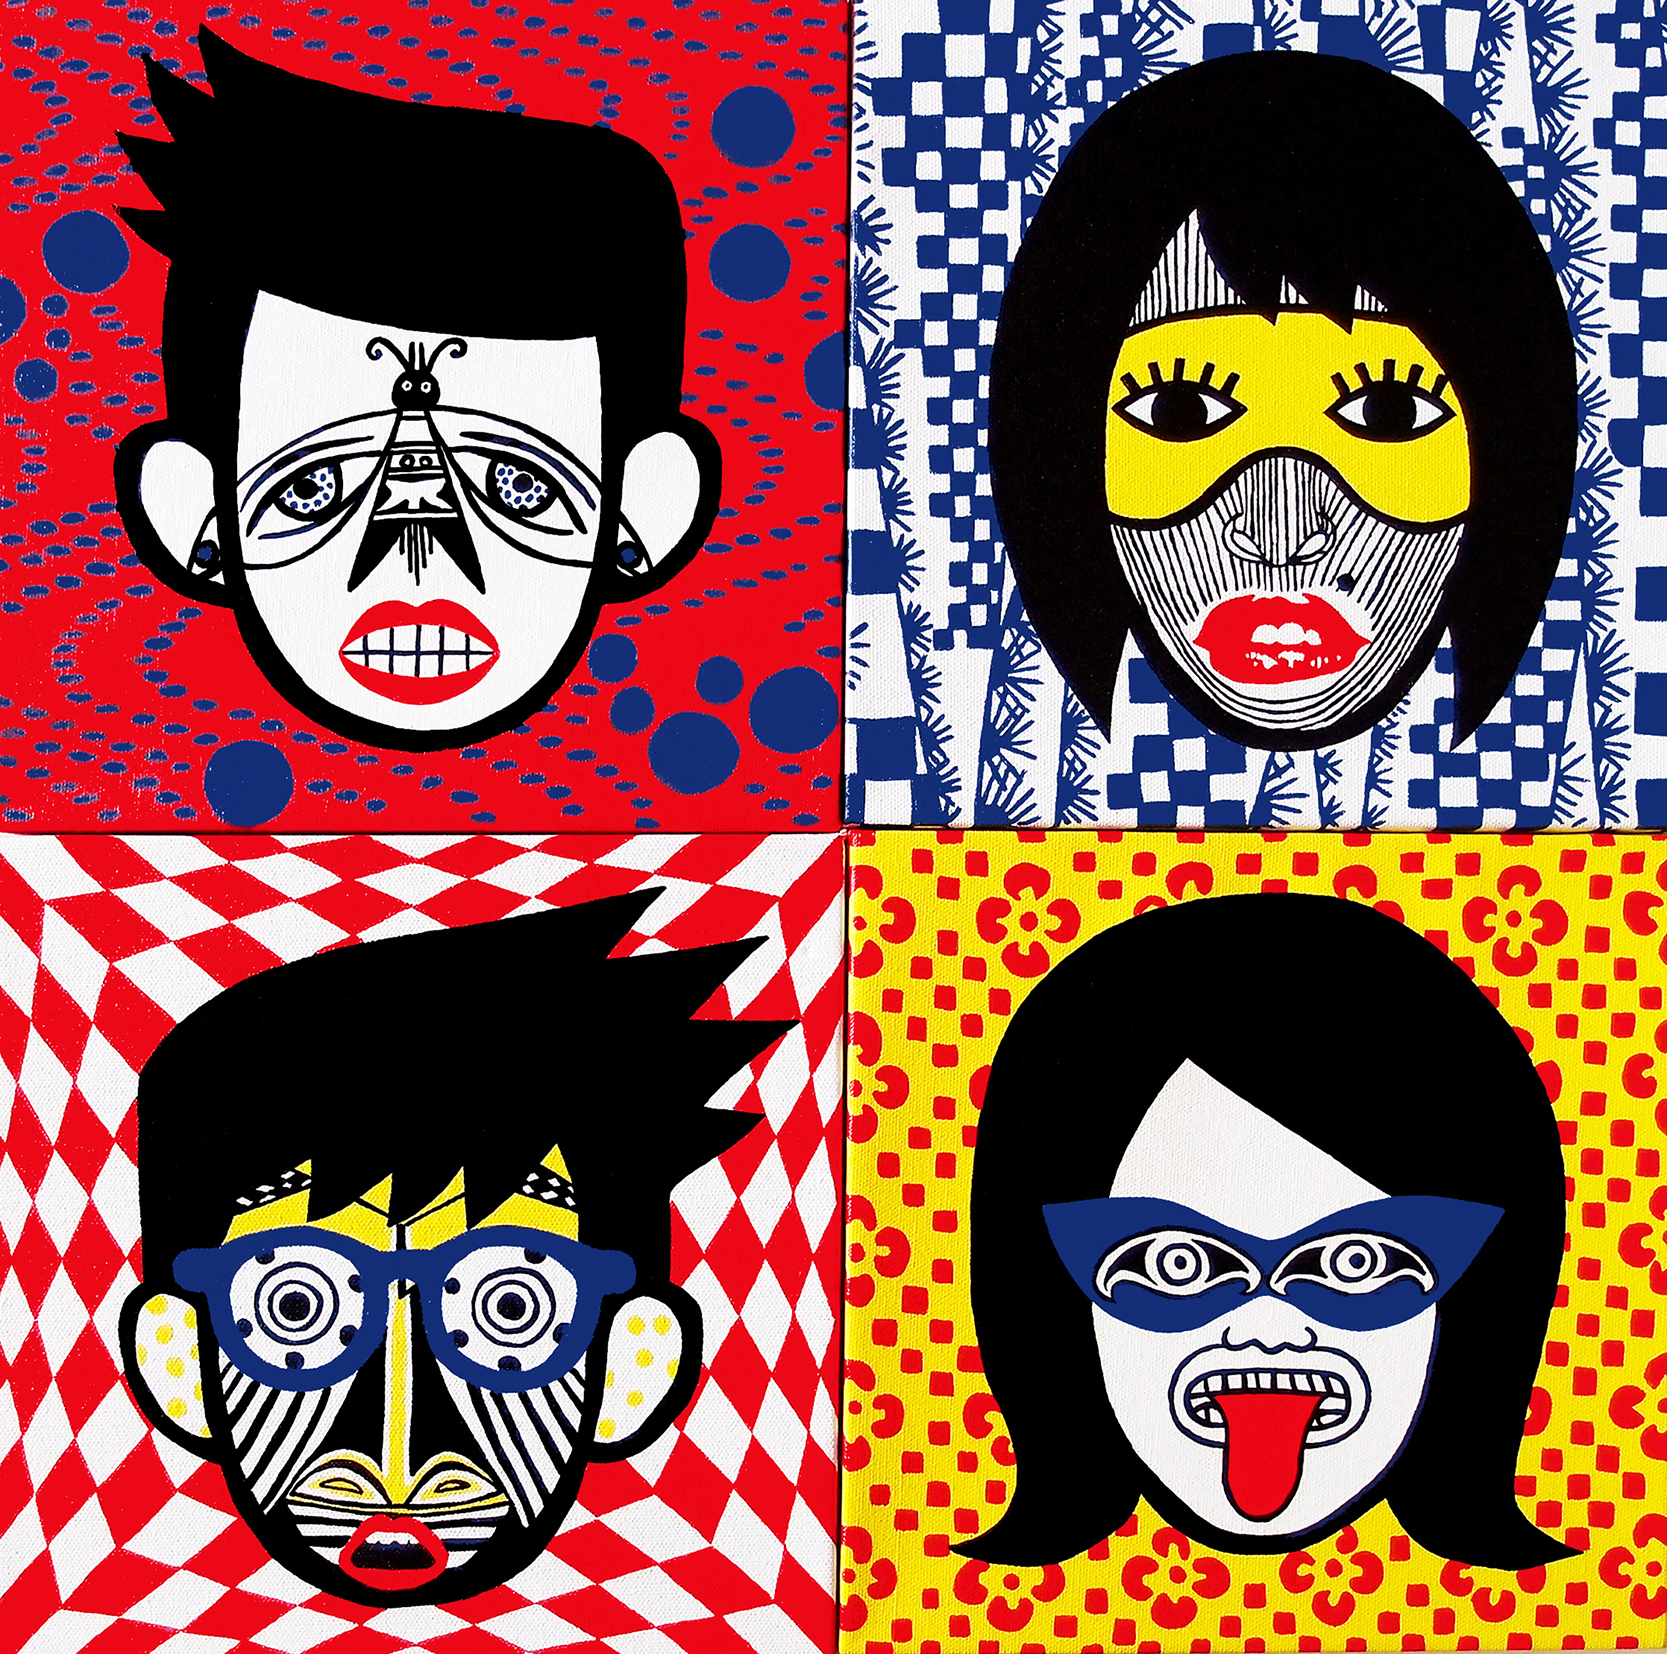 """Acrylic on stretched canvas, 4 HEADS,  4x 10"""" x 10""""x 1,5"""", NORTH AMERICAN INDIAN-JAPAN, CAMEROON-MARILYN- JAPAN    BAKUBA-ZAIRE, AZTEC-JAPAN"""